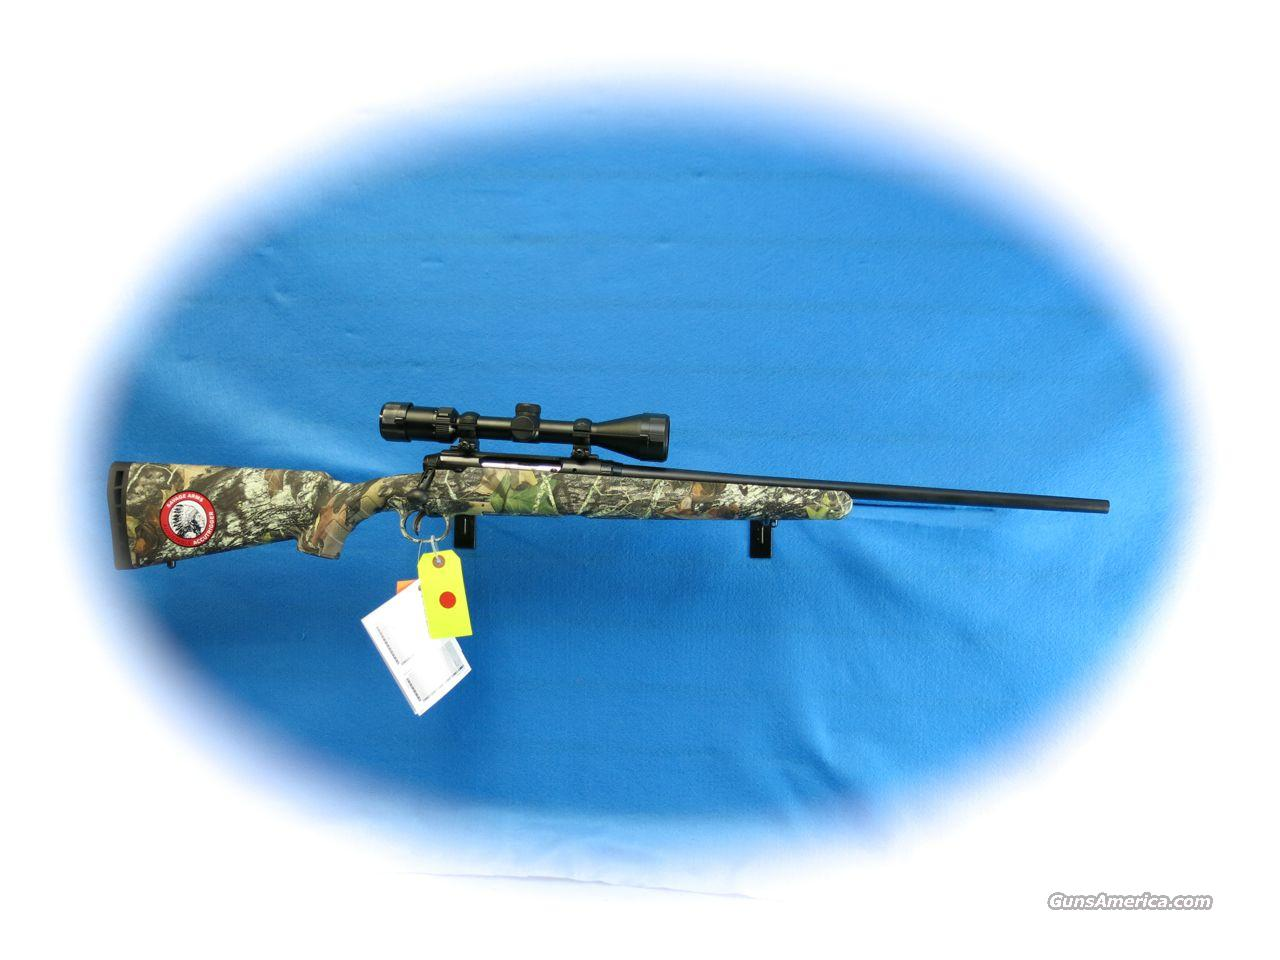 **SALE!!** Savage Axis II Xp Bolt Action Rifle/Scope Pkg .243 Win **New**  Guns > Rifles > Savage Rifles > Accutrigger Models > Sporting